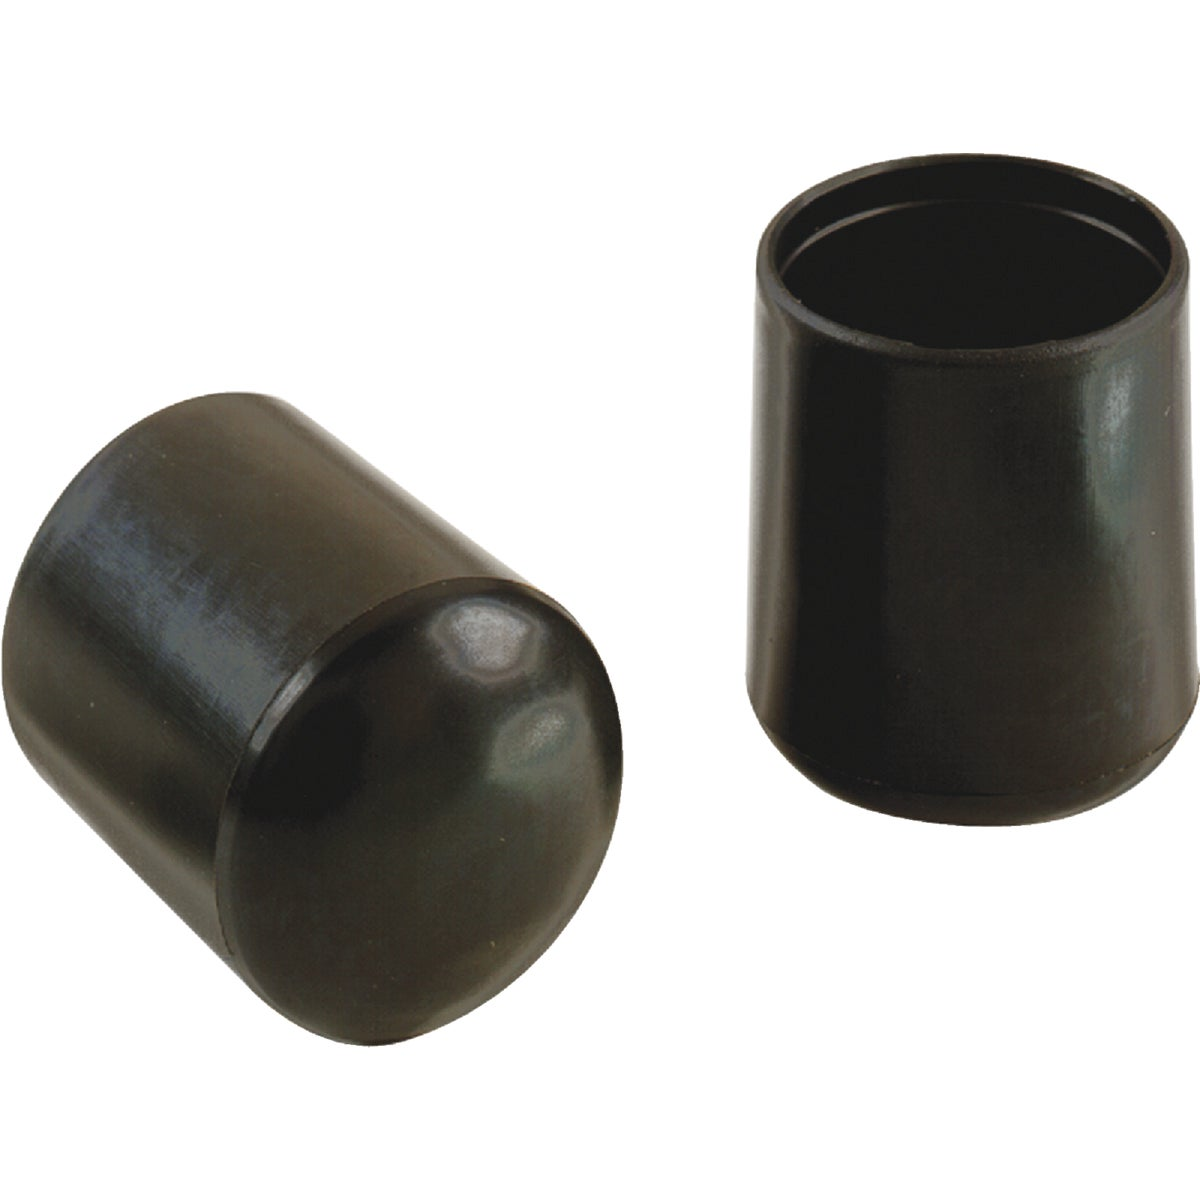 "5/8"" BLACK VINYL LEG TIP - 209449 by Shepherd Hardware"